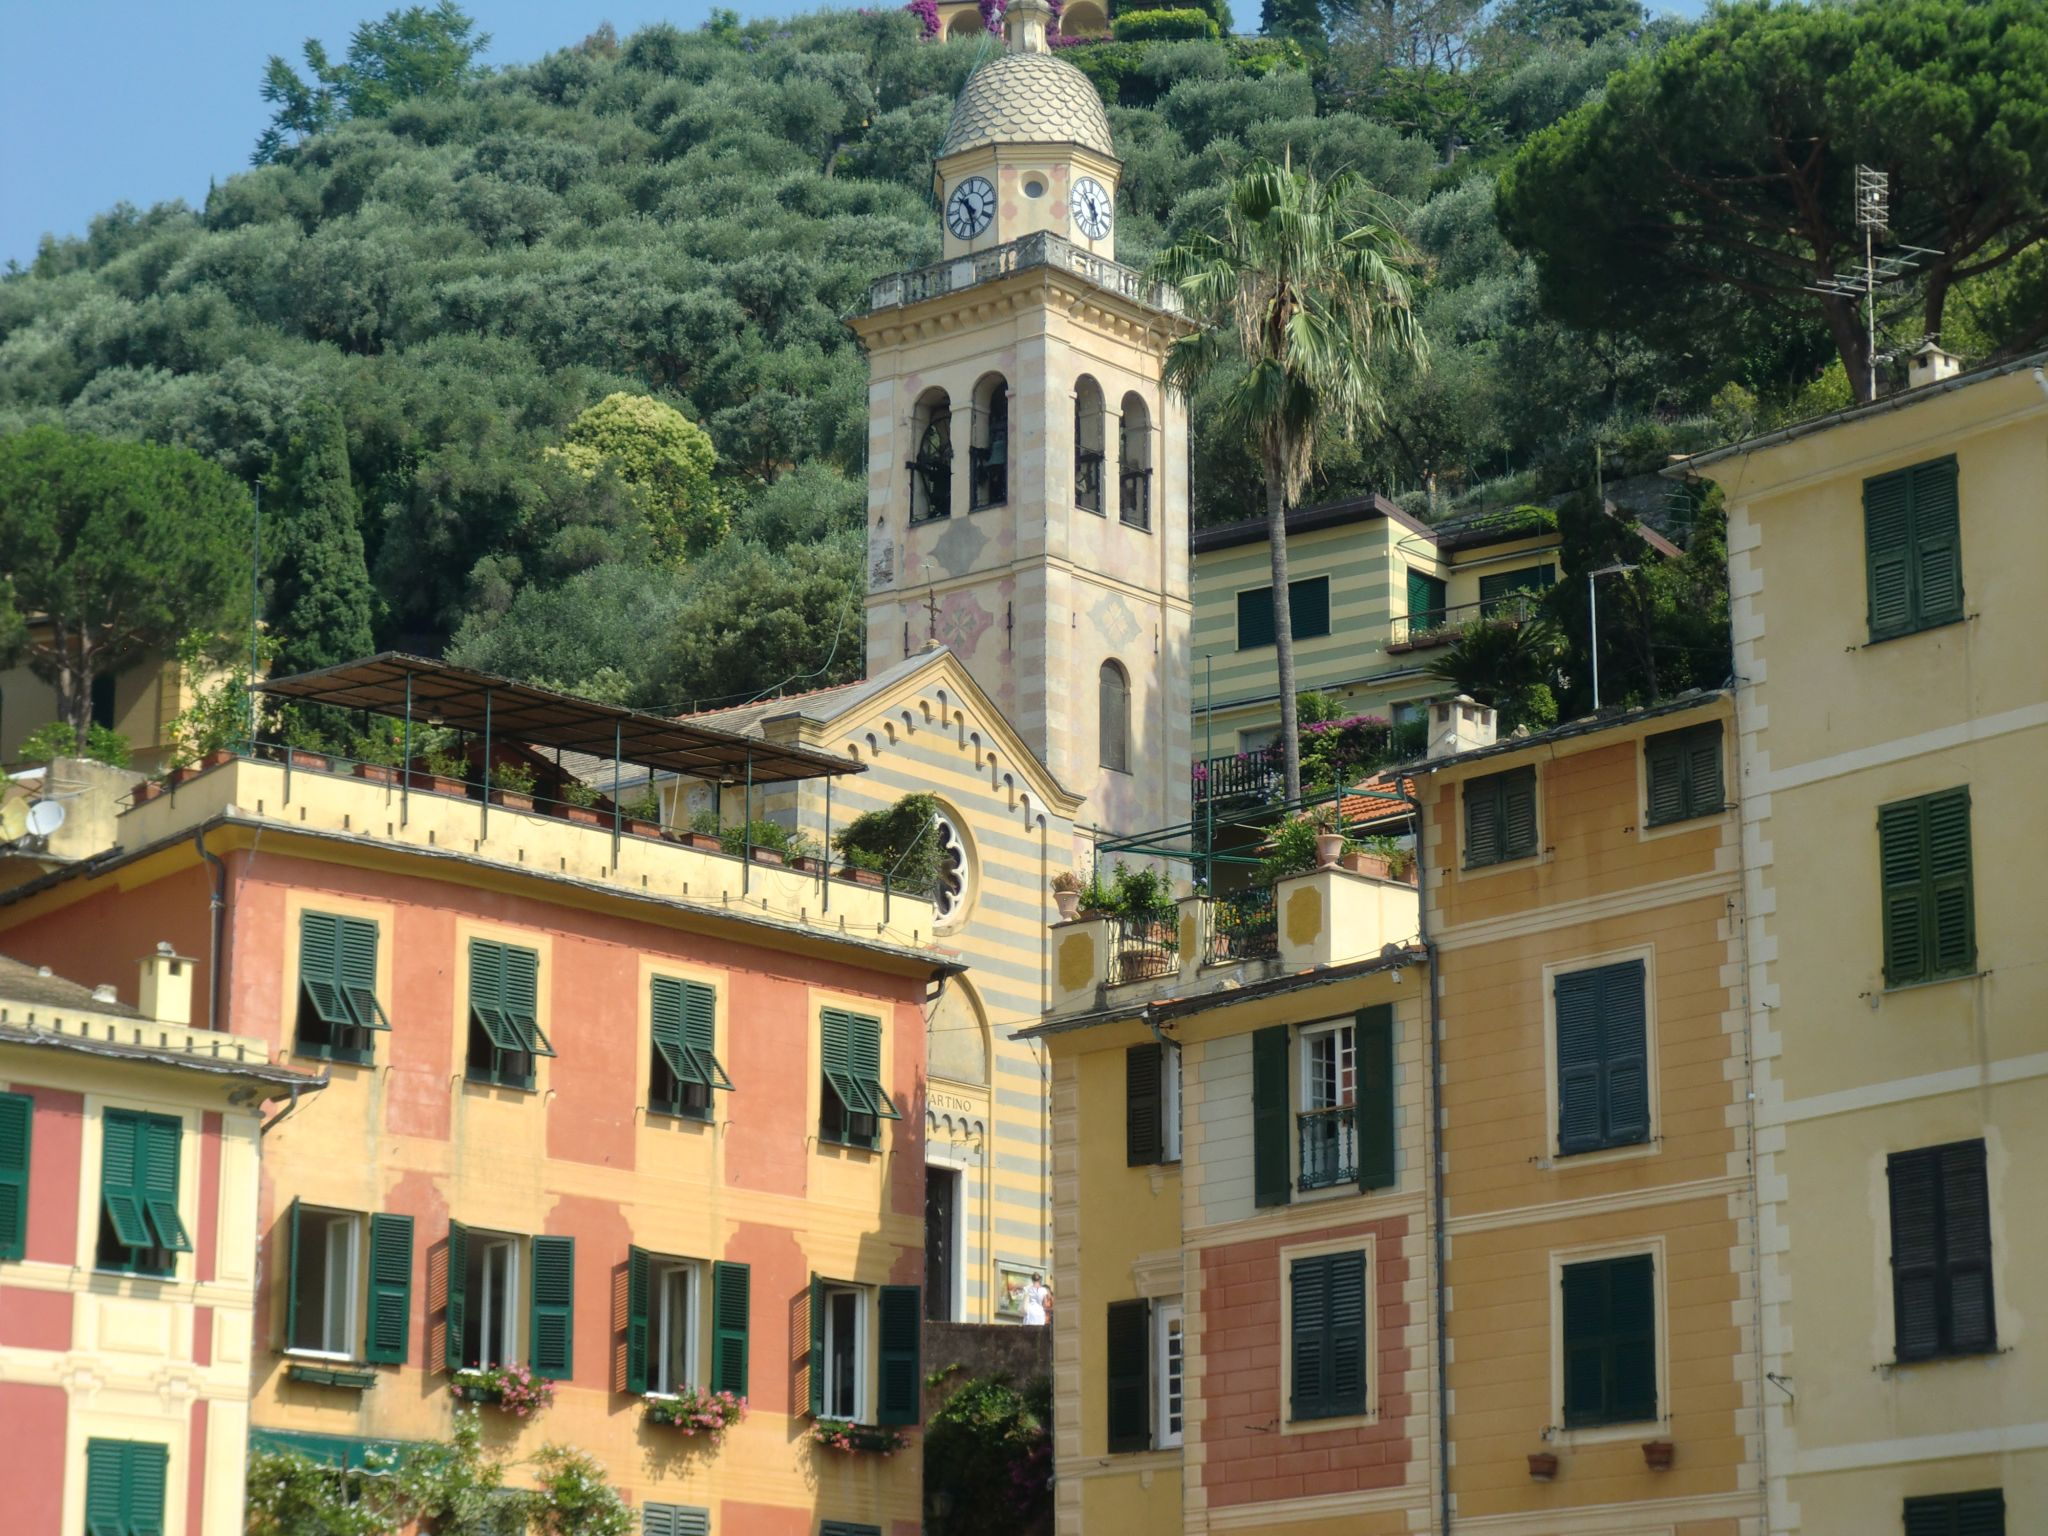 Portofino 6 - Portofino: a small pearl on the sea